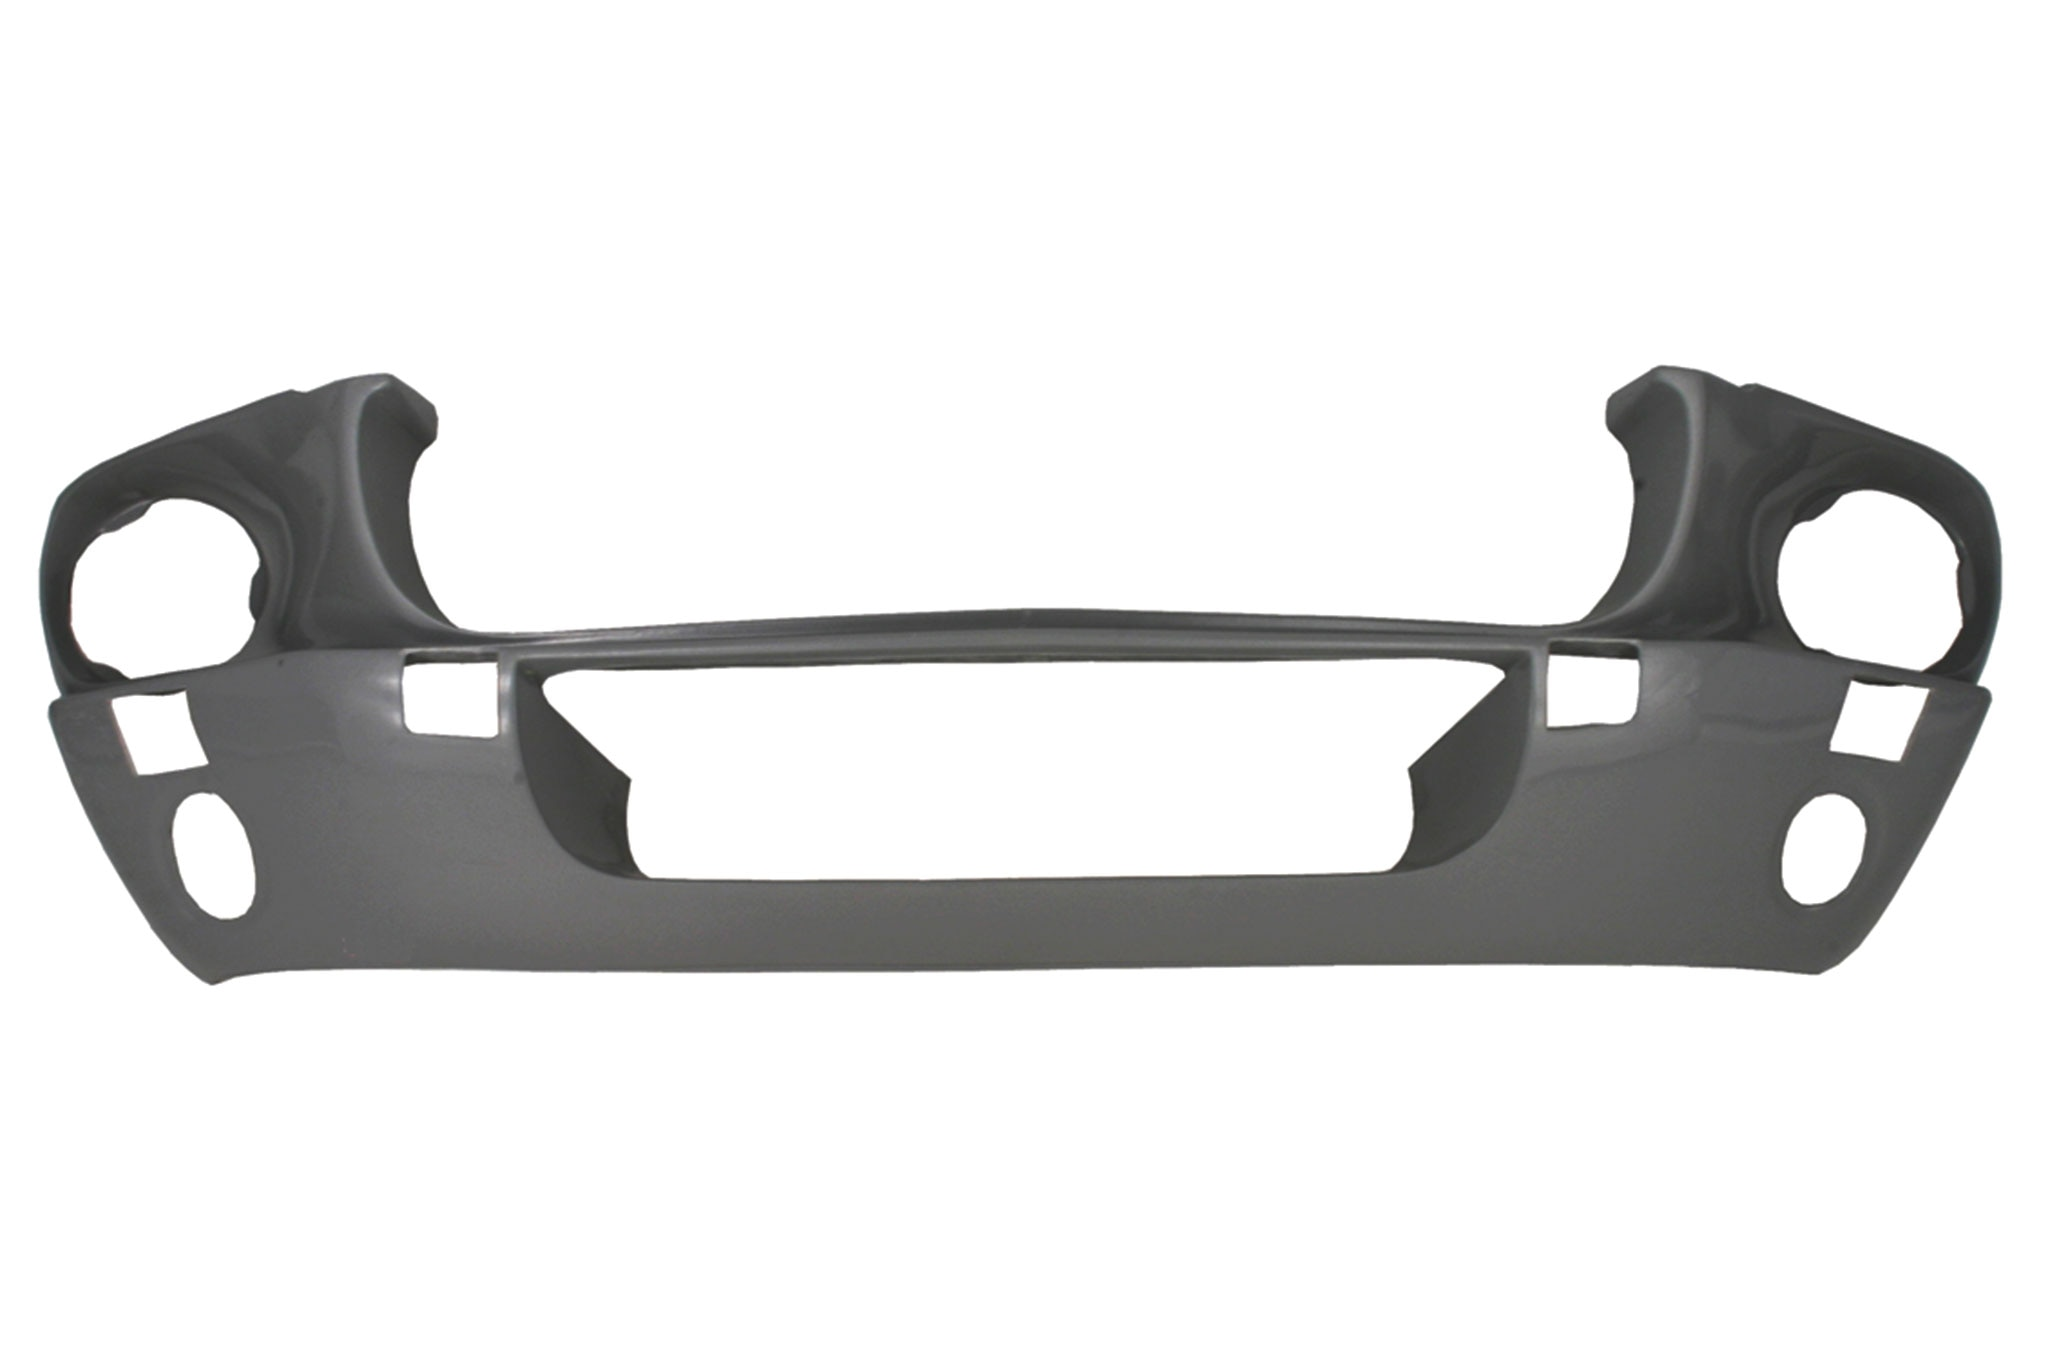 1967 1968 Mustang Front Piece